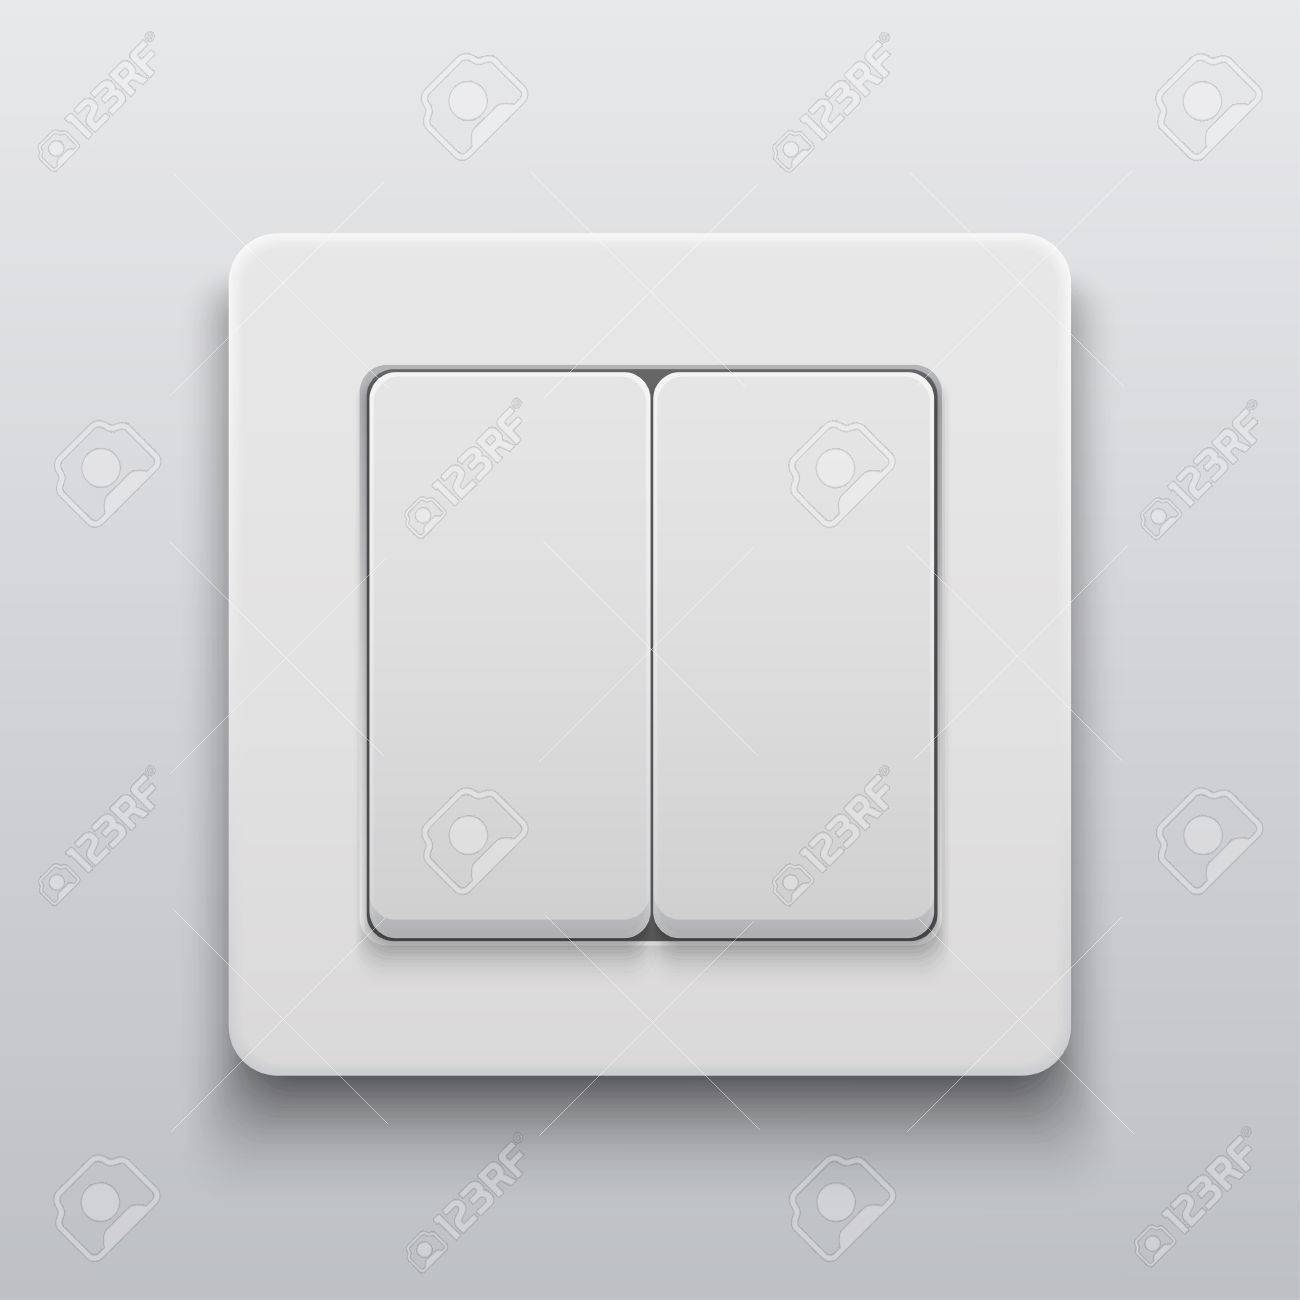 Vector vector modern light switch icon on light background